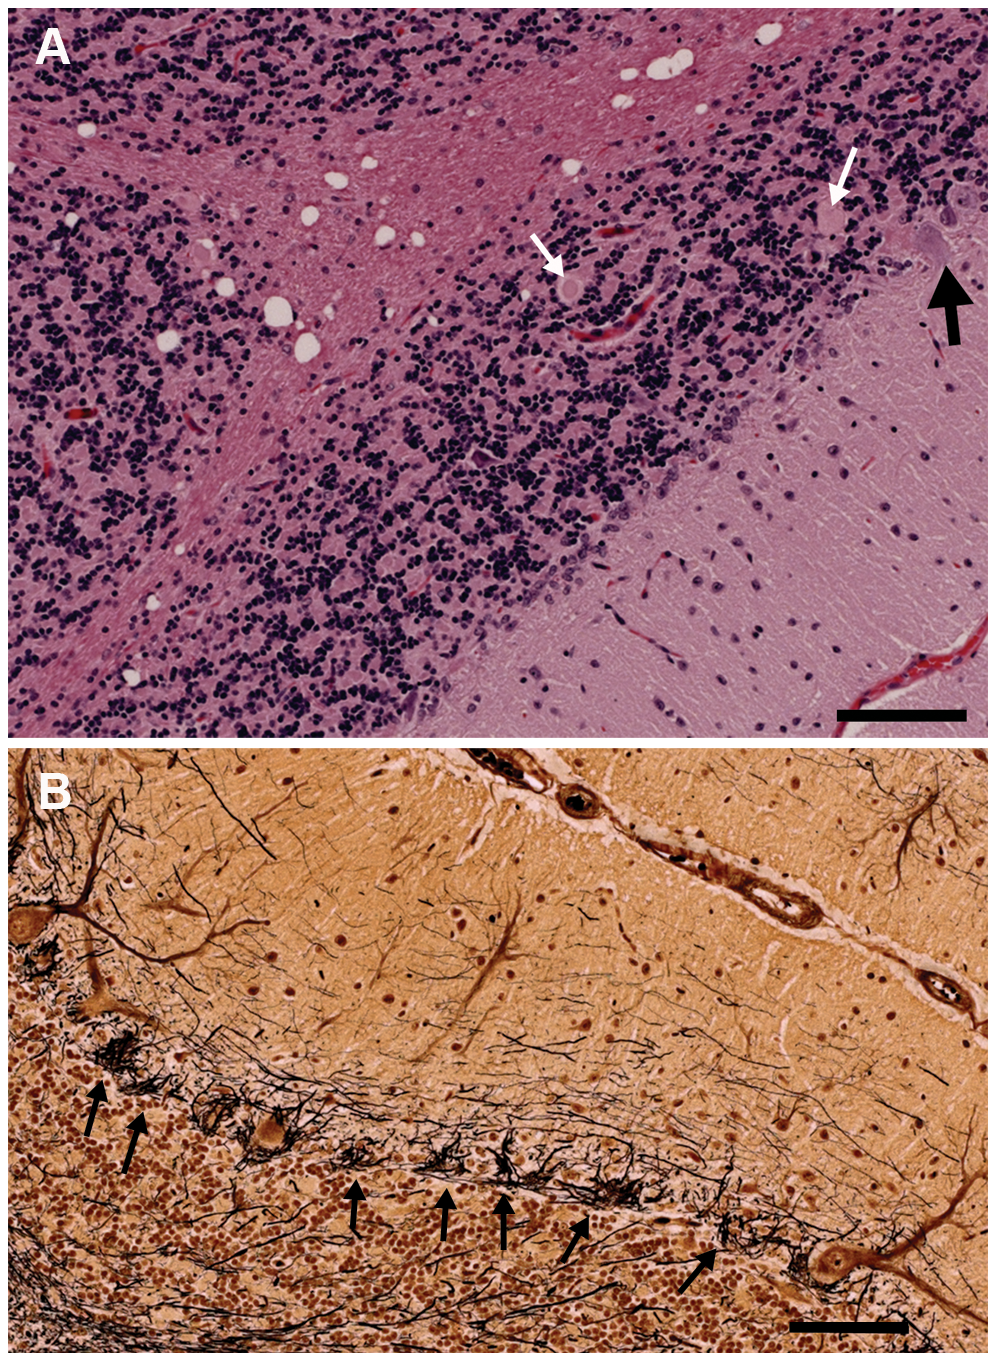 Sections of the cerebellum from an affected 2.5-year-old Gordon Setter stained with hematoxylin and eosin (a) and Bielschowsky (b).